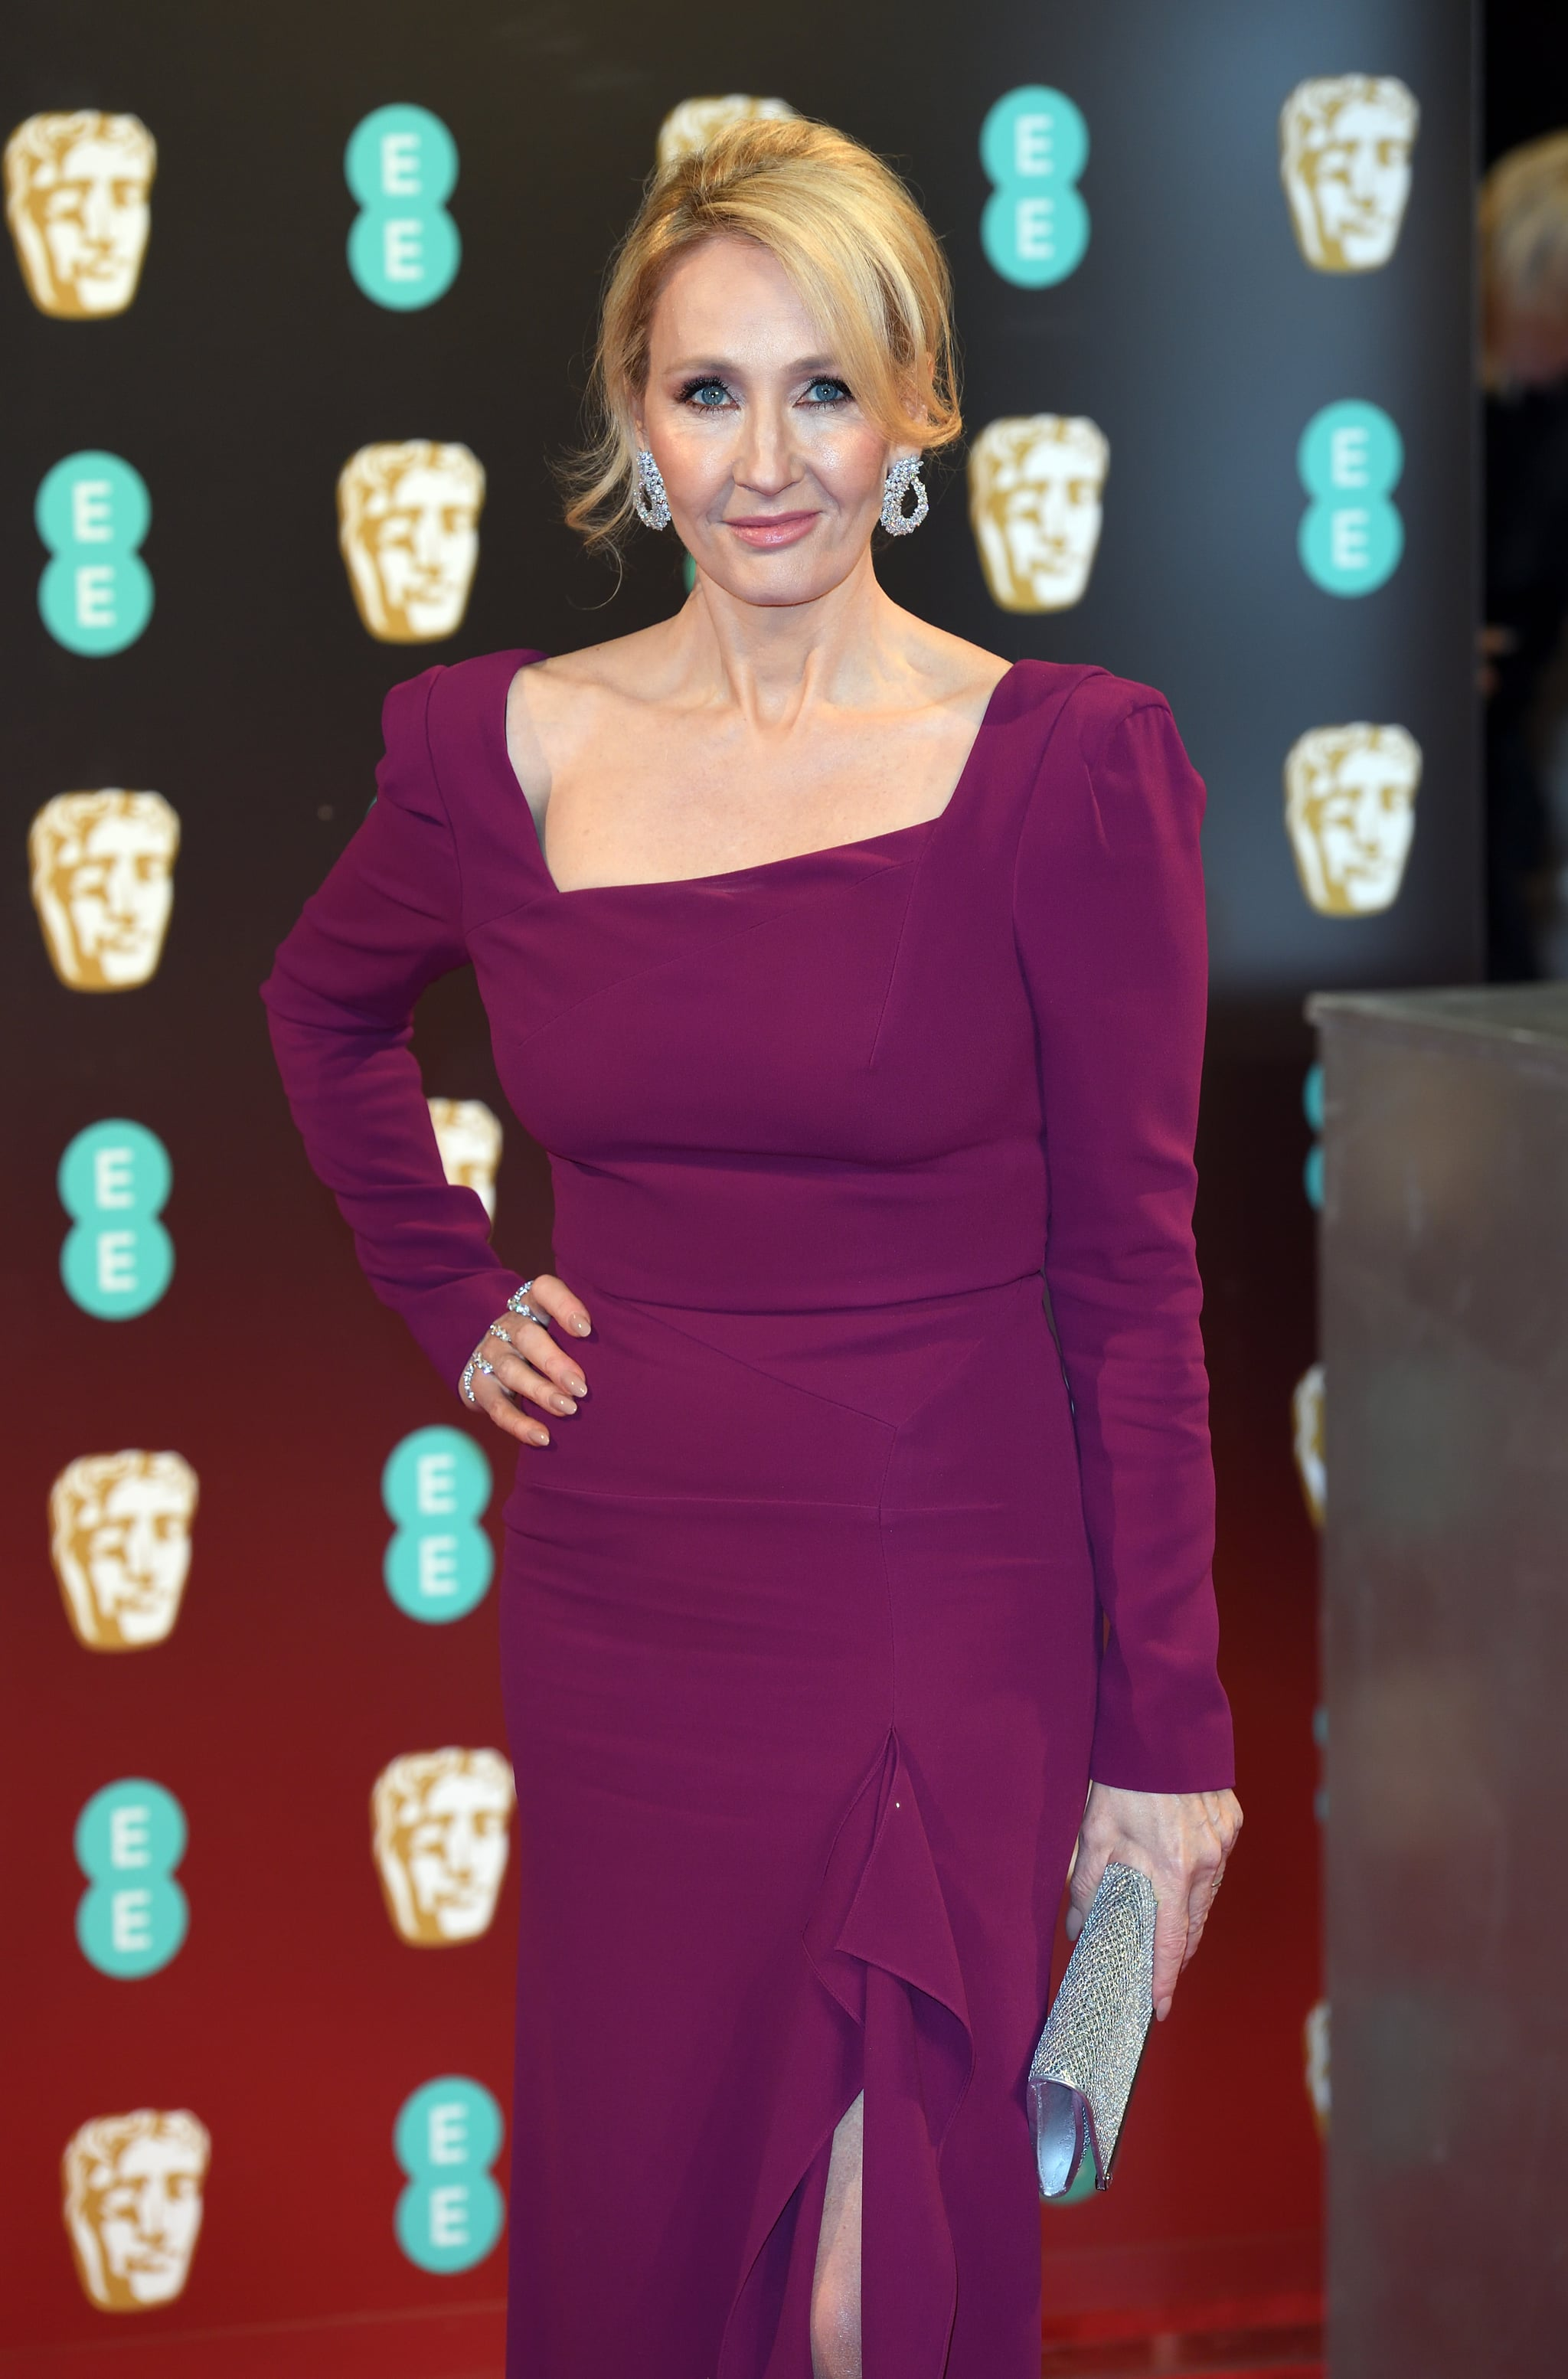 LONDON, ENGLAND - FEBRUARY 12:  JK Rowling attends the 70th EE British Academy Film Awards (BAFTA) at the Royal Albert Hall on February 12, 2017 in London, England.  (Photo by Karwai Tang/WireImage)